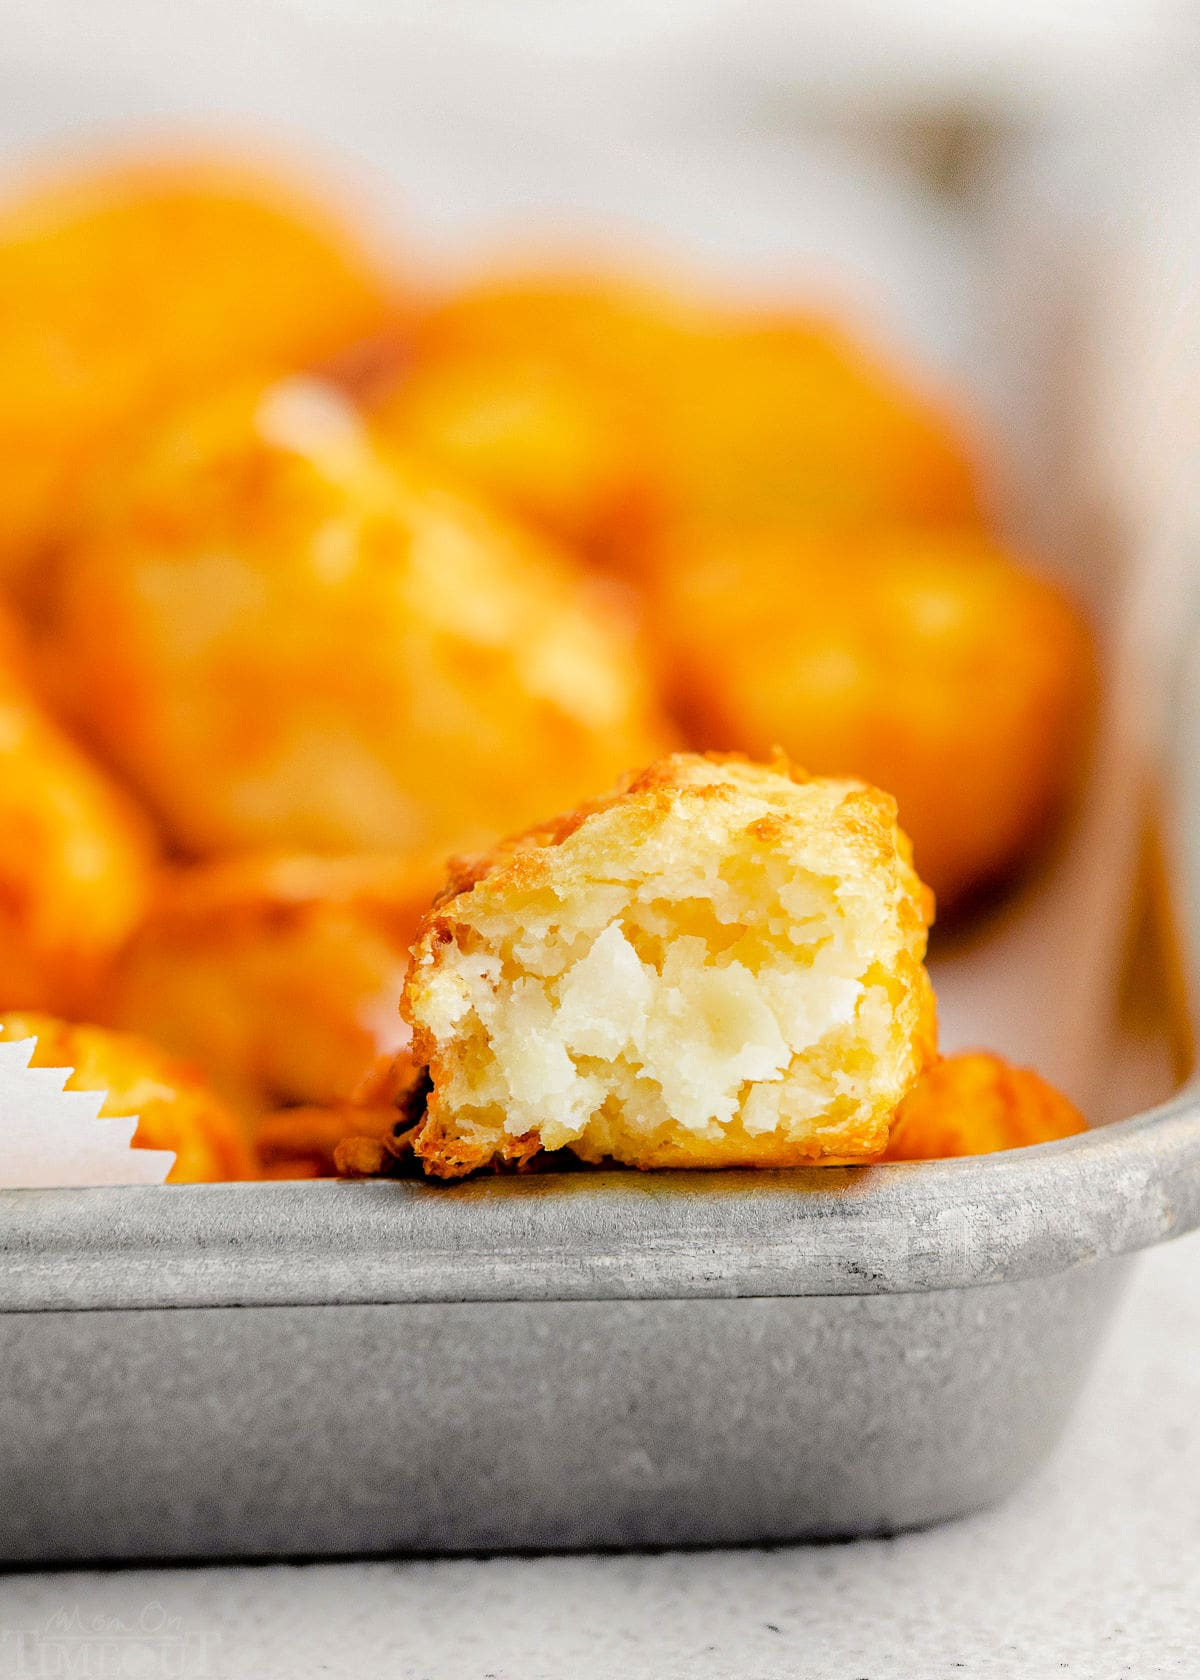 half of tater tot showing fluffy insides.